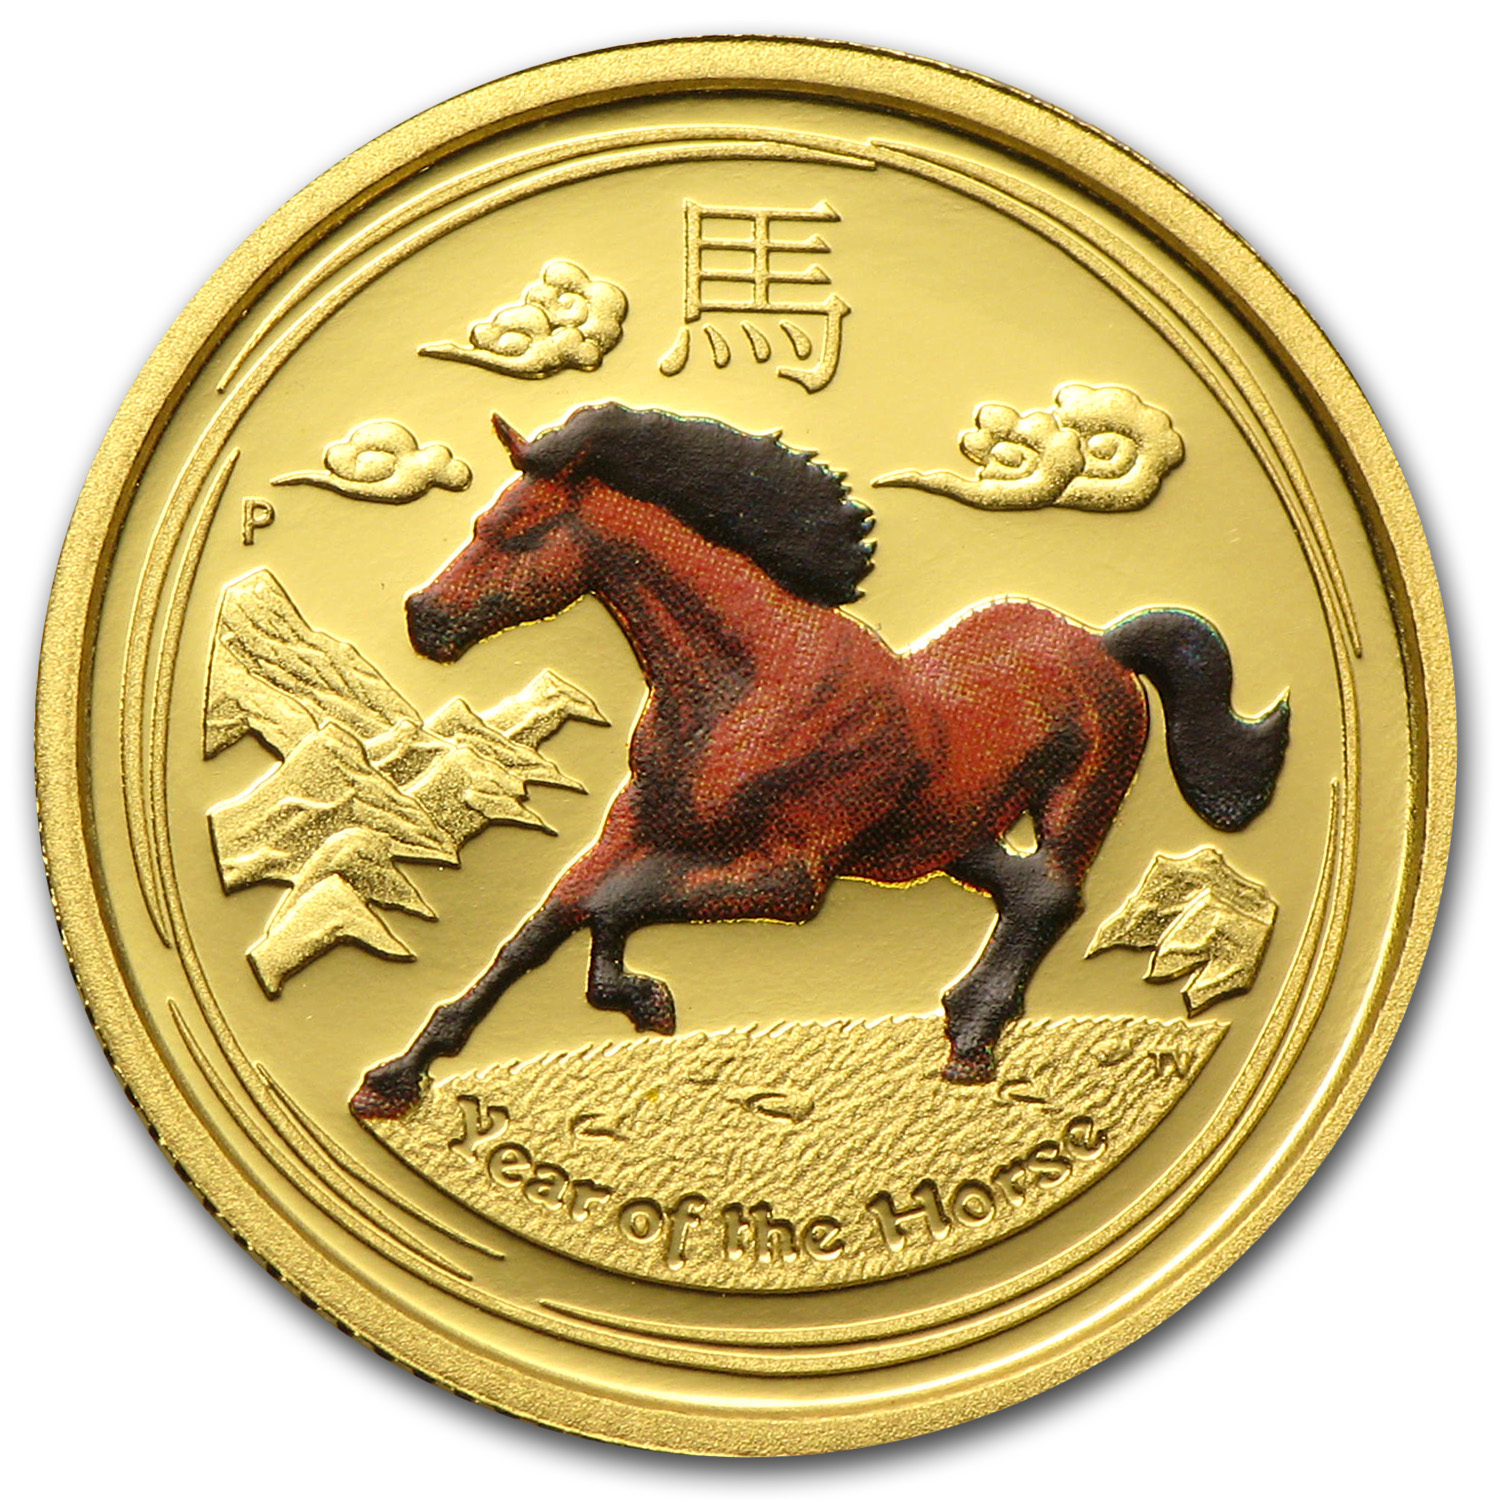 2014 Australia 1/10 oz Gold Lunar Horse Proof (SII, Colorized)